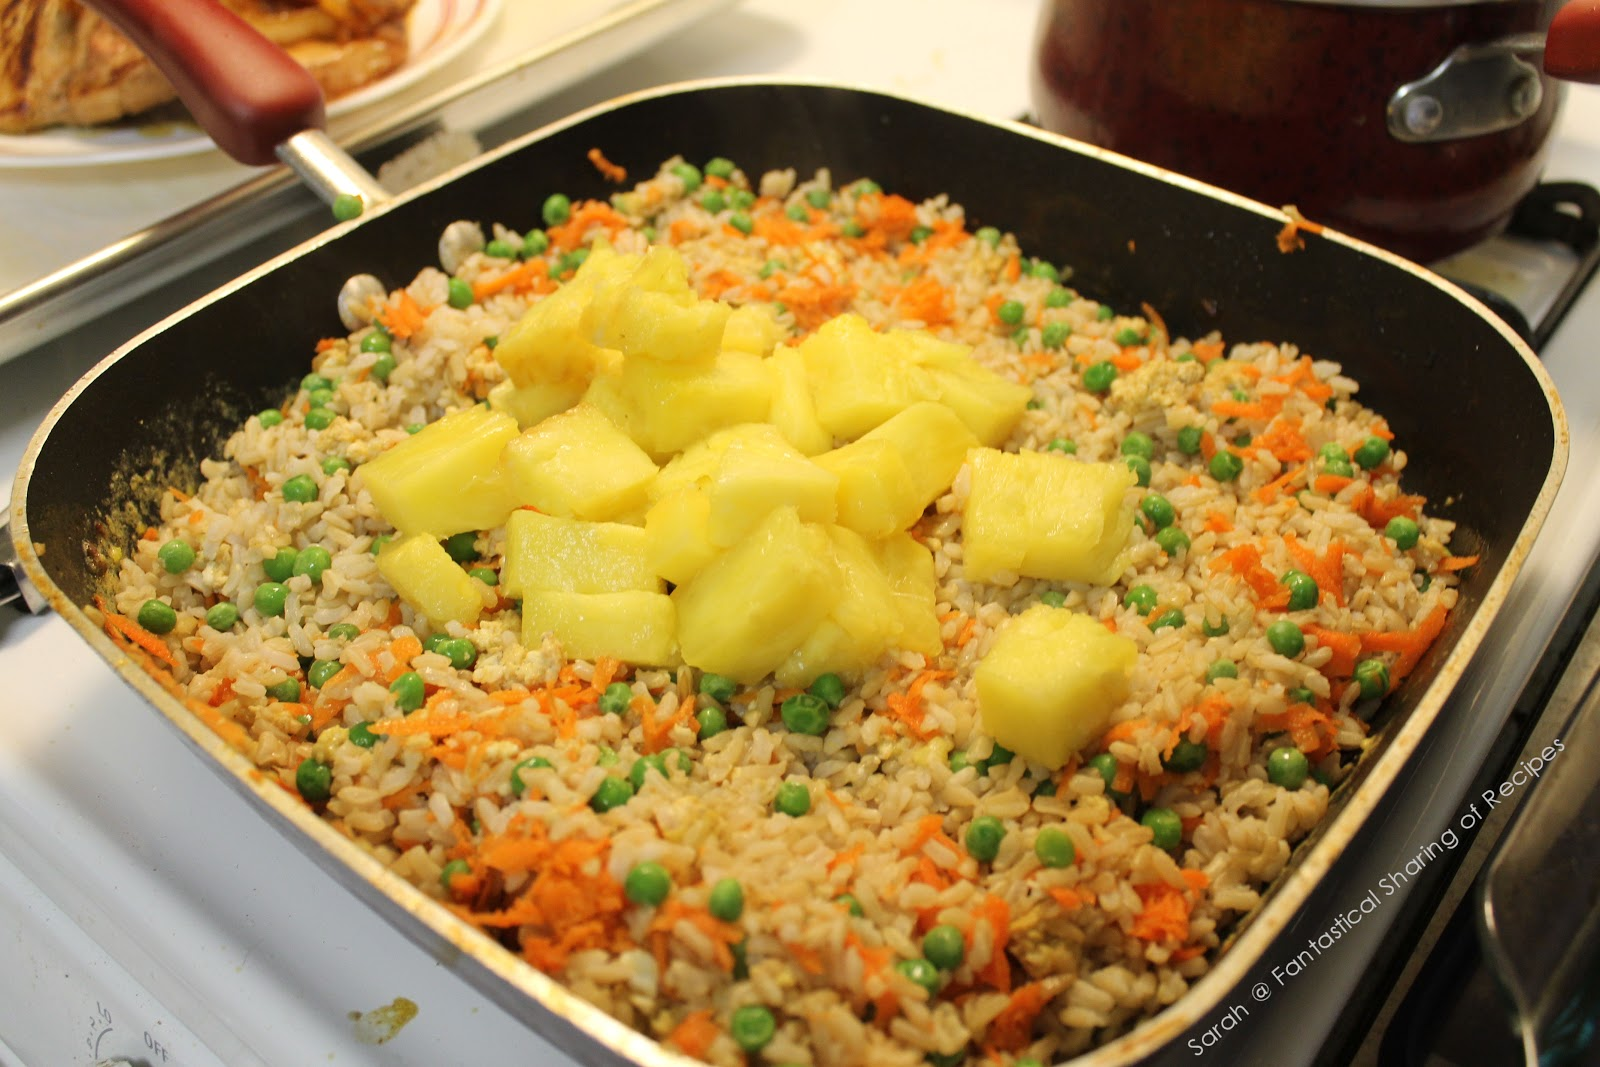 Fantastical Sharing of Recipes: Pork Chops and Pineapple Fried Rice